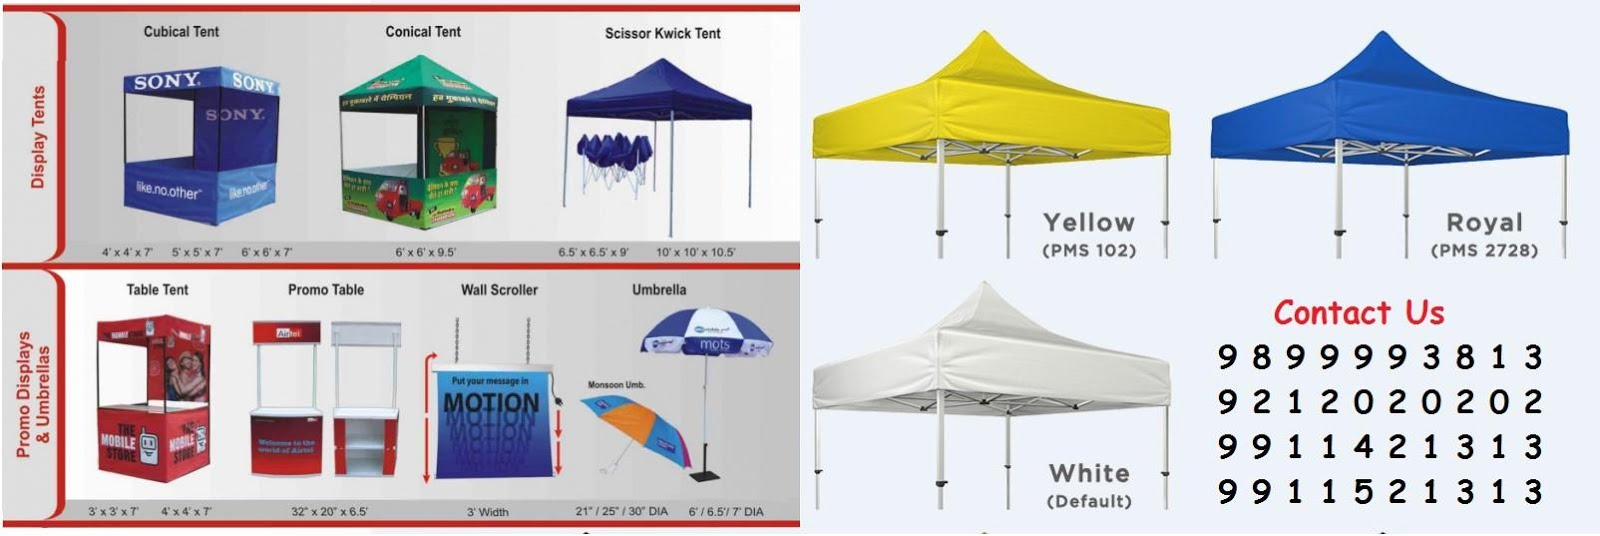 Advertising Canopies Promotional Canopy Advertising Tent Marketing Stalls Table Canopy Delhi  sc 1 th 130 & Promotional Canopy Tent Advertising Tent Manufacturers ...